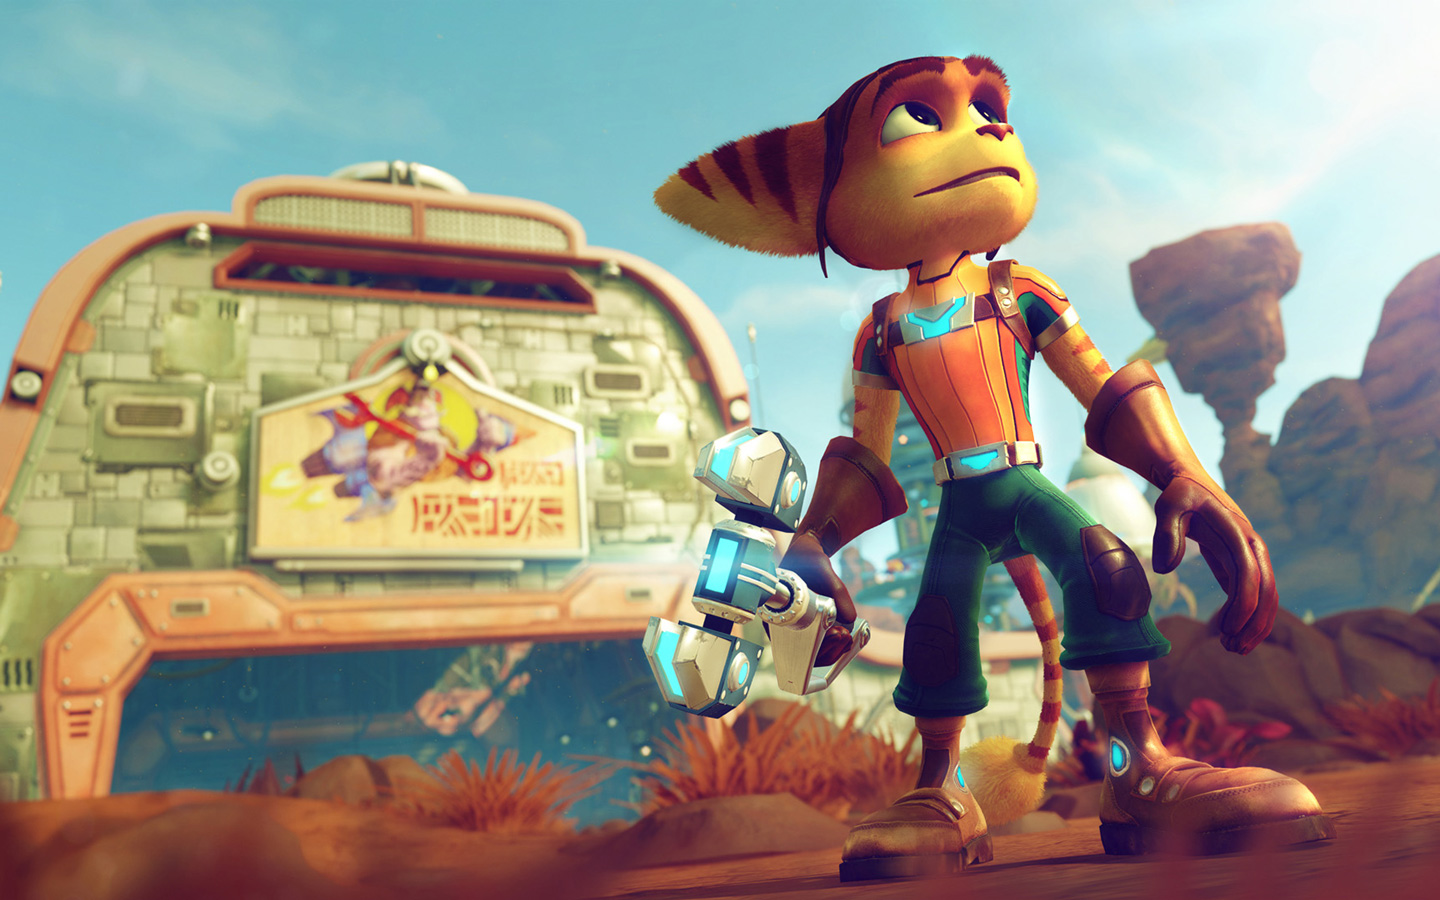 Free Ratchet & Clank Wallpaper in 1440x900